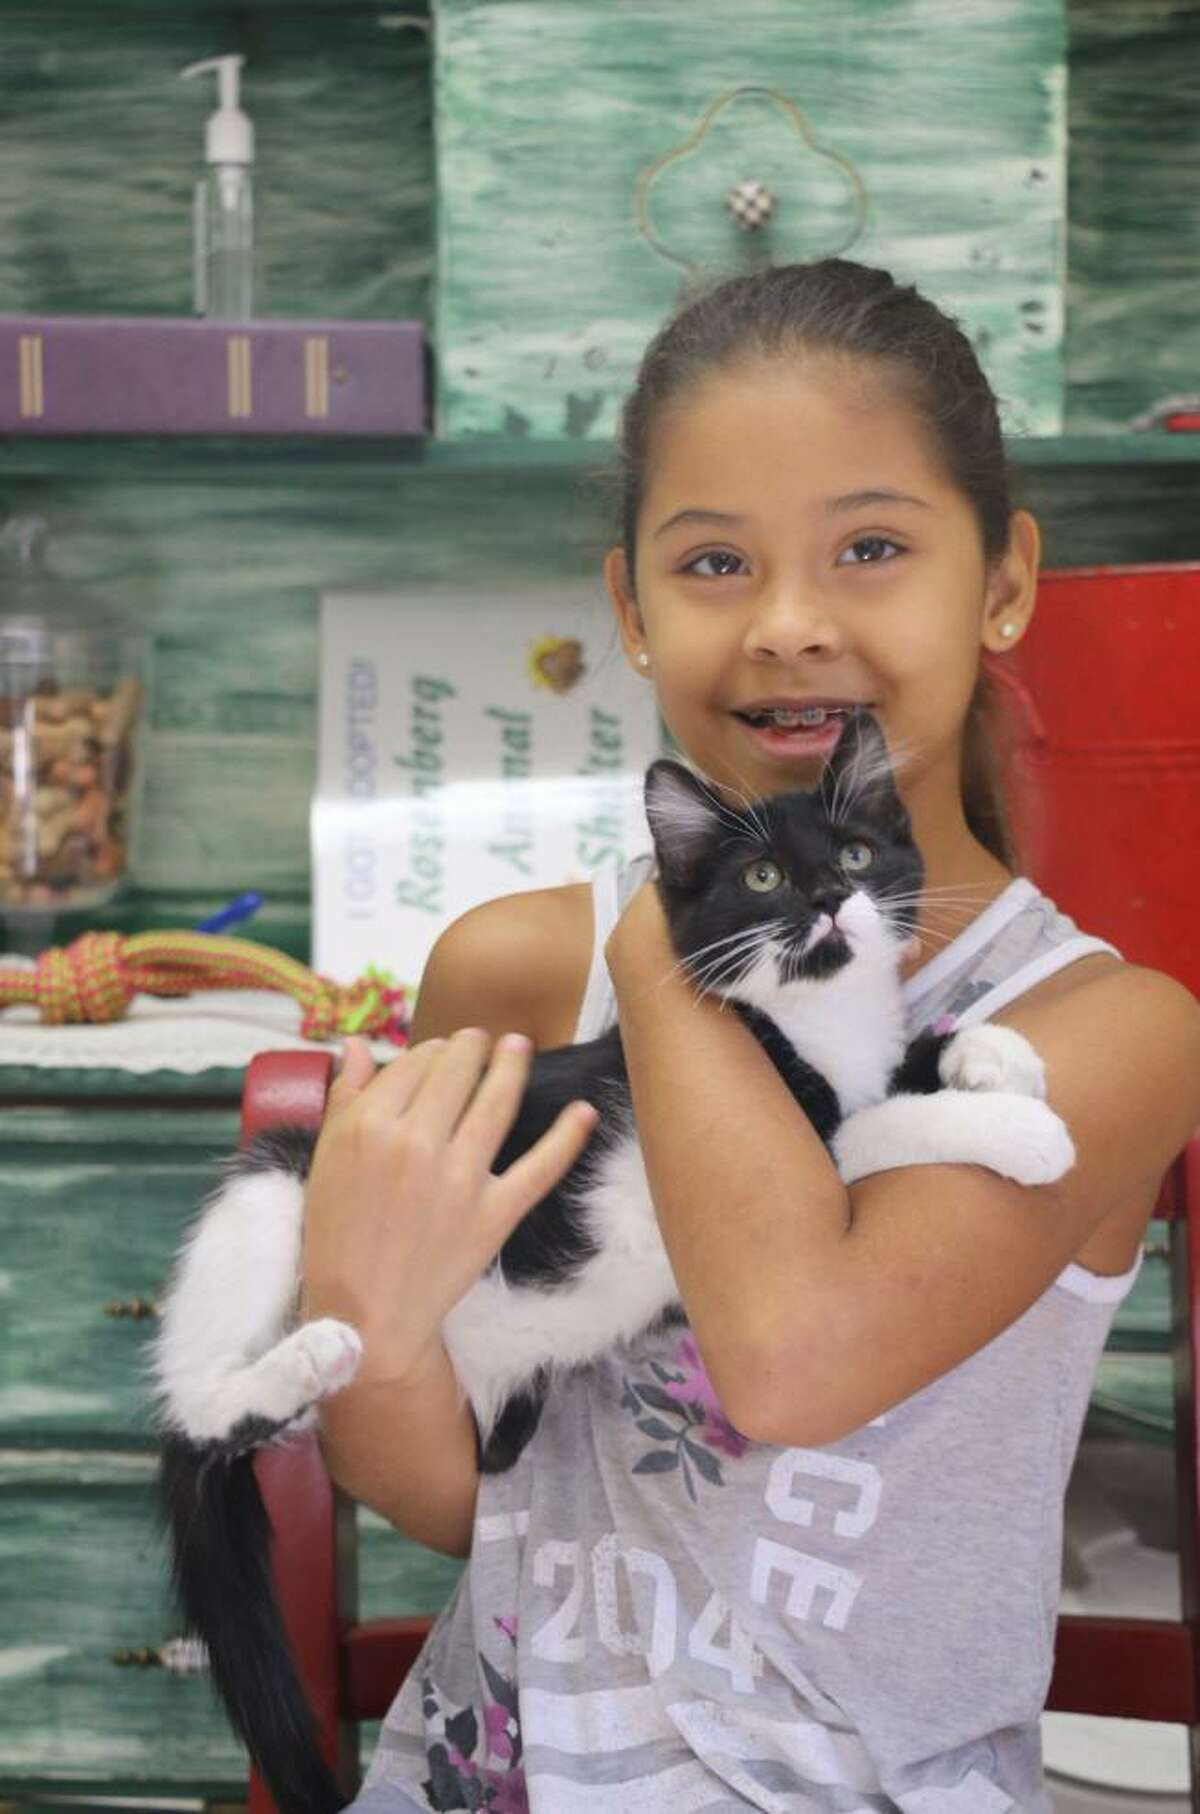 The Rosenberg Animal Control and Shelter has collaborated with Chick-fil-a Rosenberg to host a Spirit Night. Come on out on Wednesday, Aug. 15, from 4 to 8 p.m. and look for the Spirit Night box on the counter with the Rosenberg Animal Control and Shelter label affixed to it and drop in your sales receipt. The restaurant will donate a percentage of the sales made from the event to the shelter.